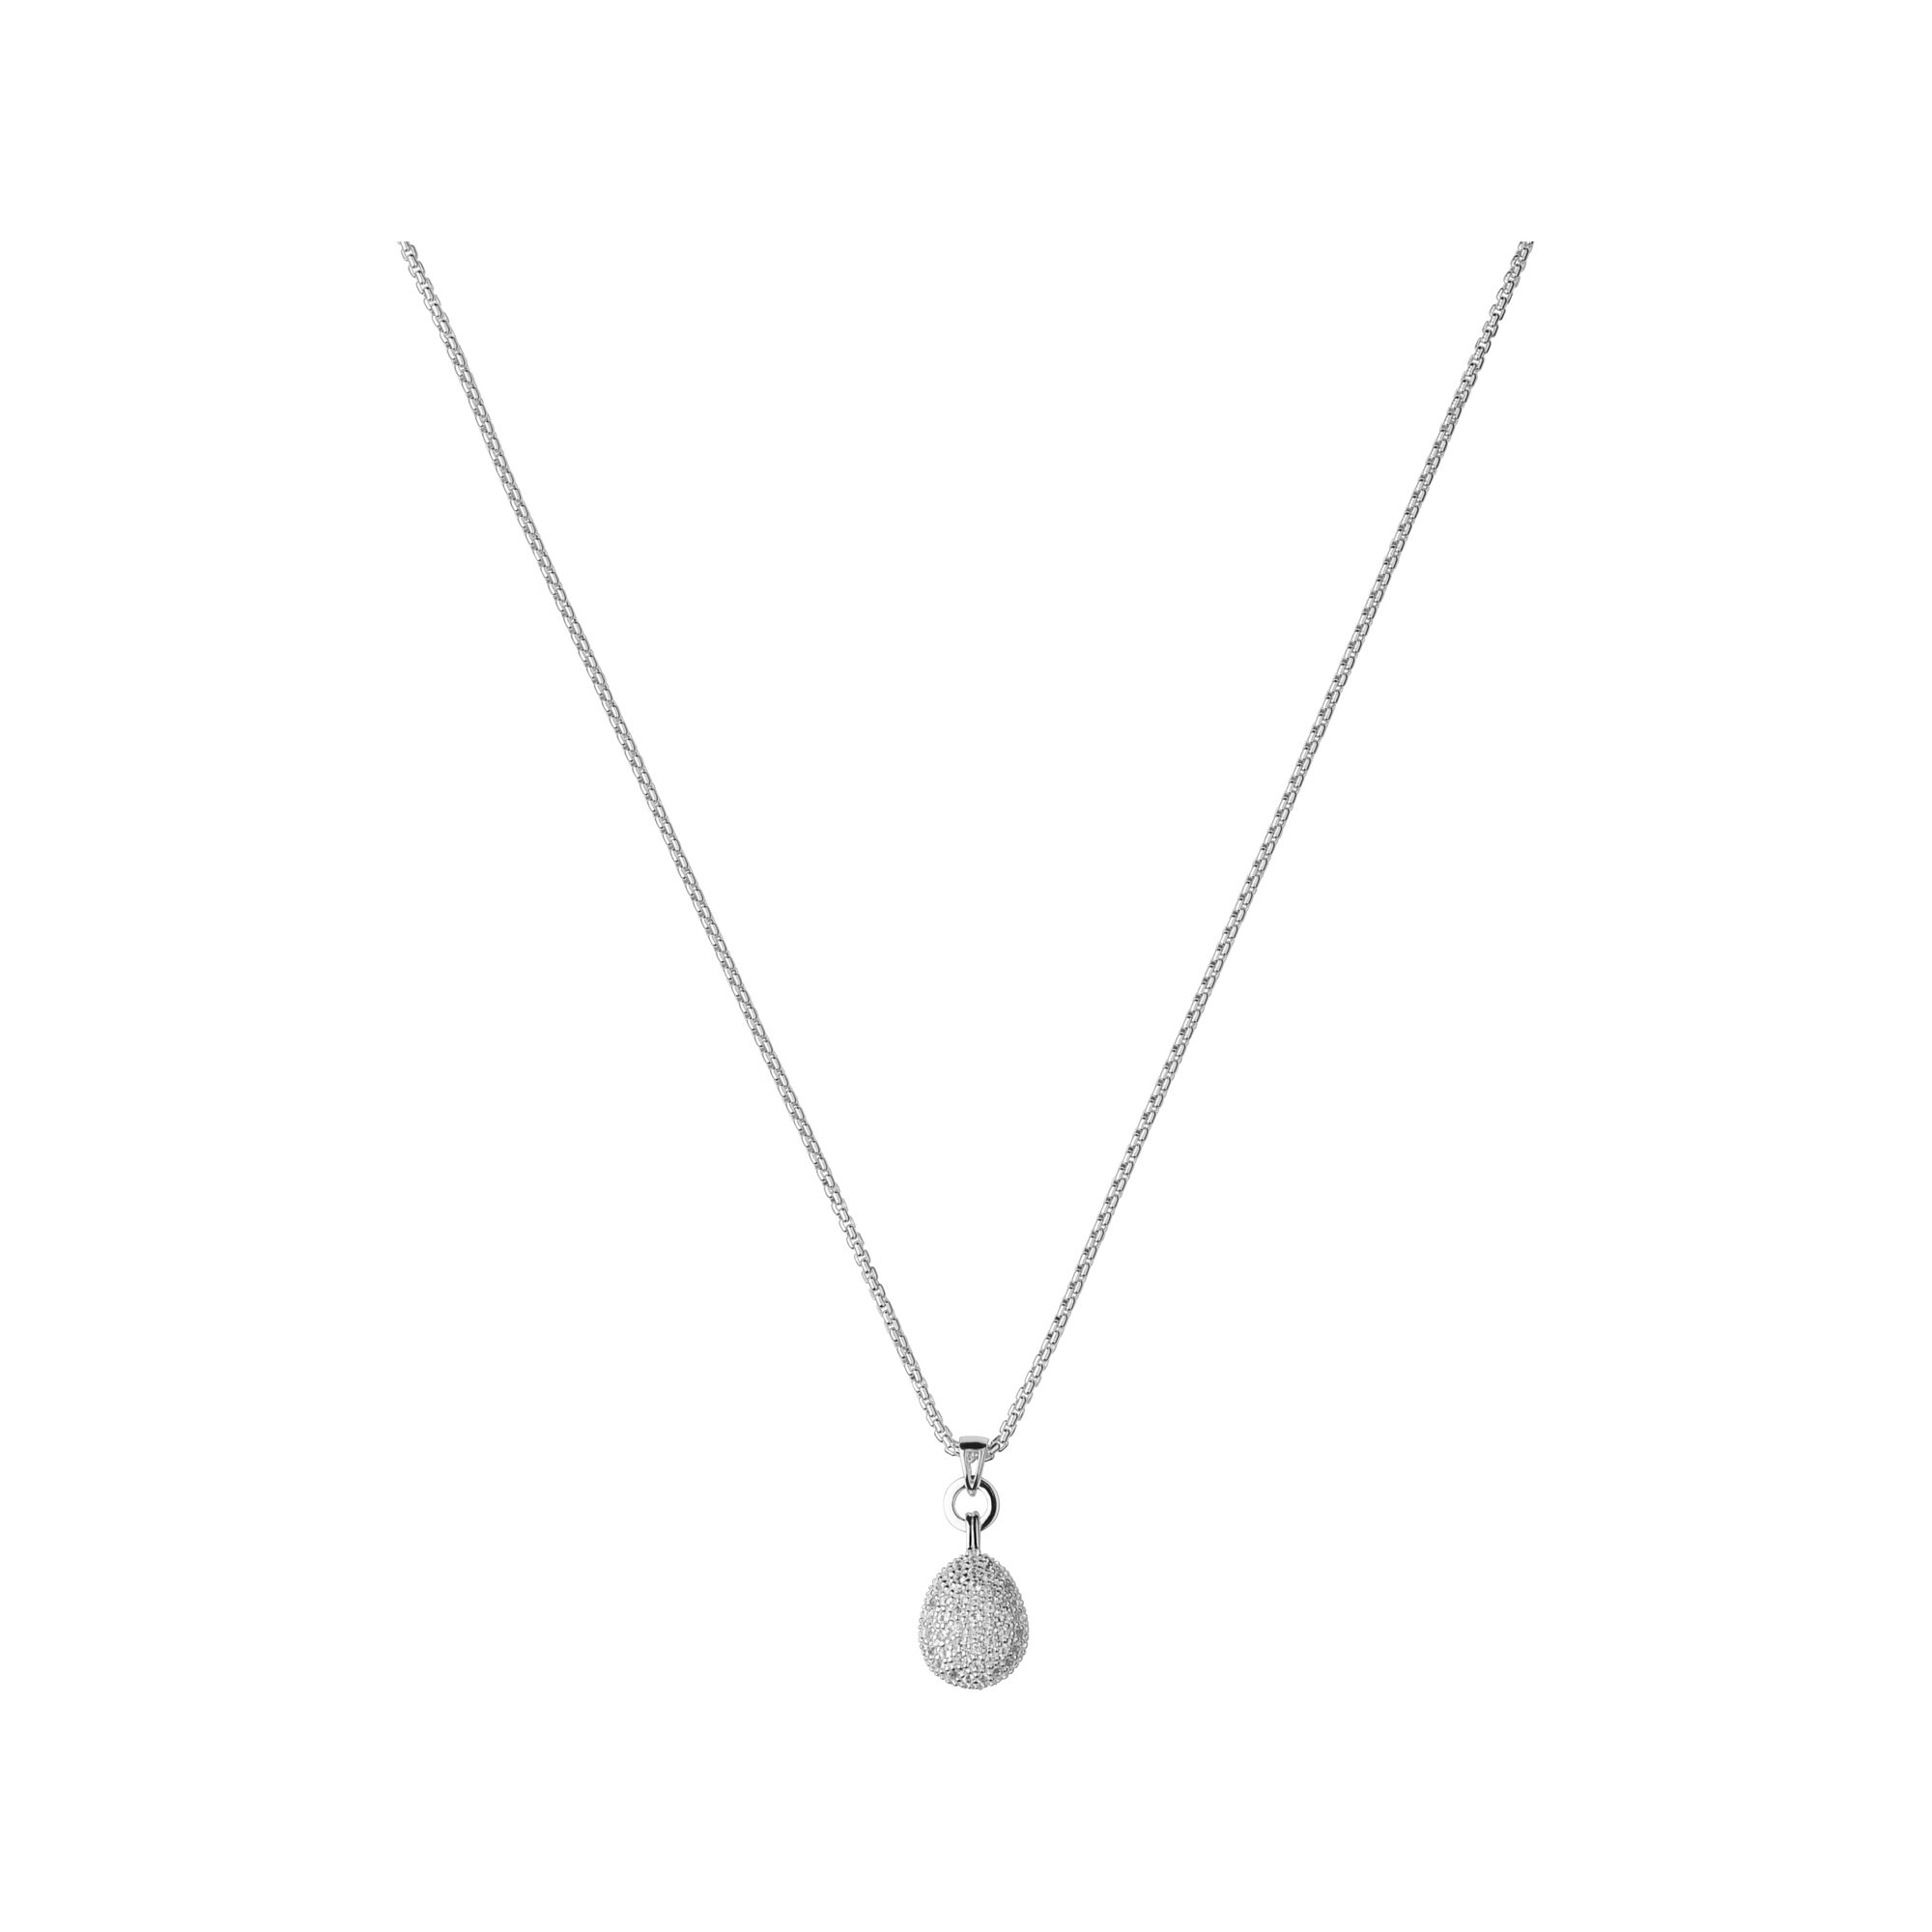 chain women solid fine pendants new item necklaces hutang free blue pendant gift real sterling necklace jewelry teardrop topaz silver gemstone